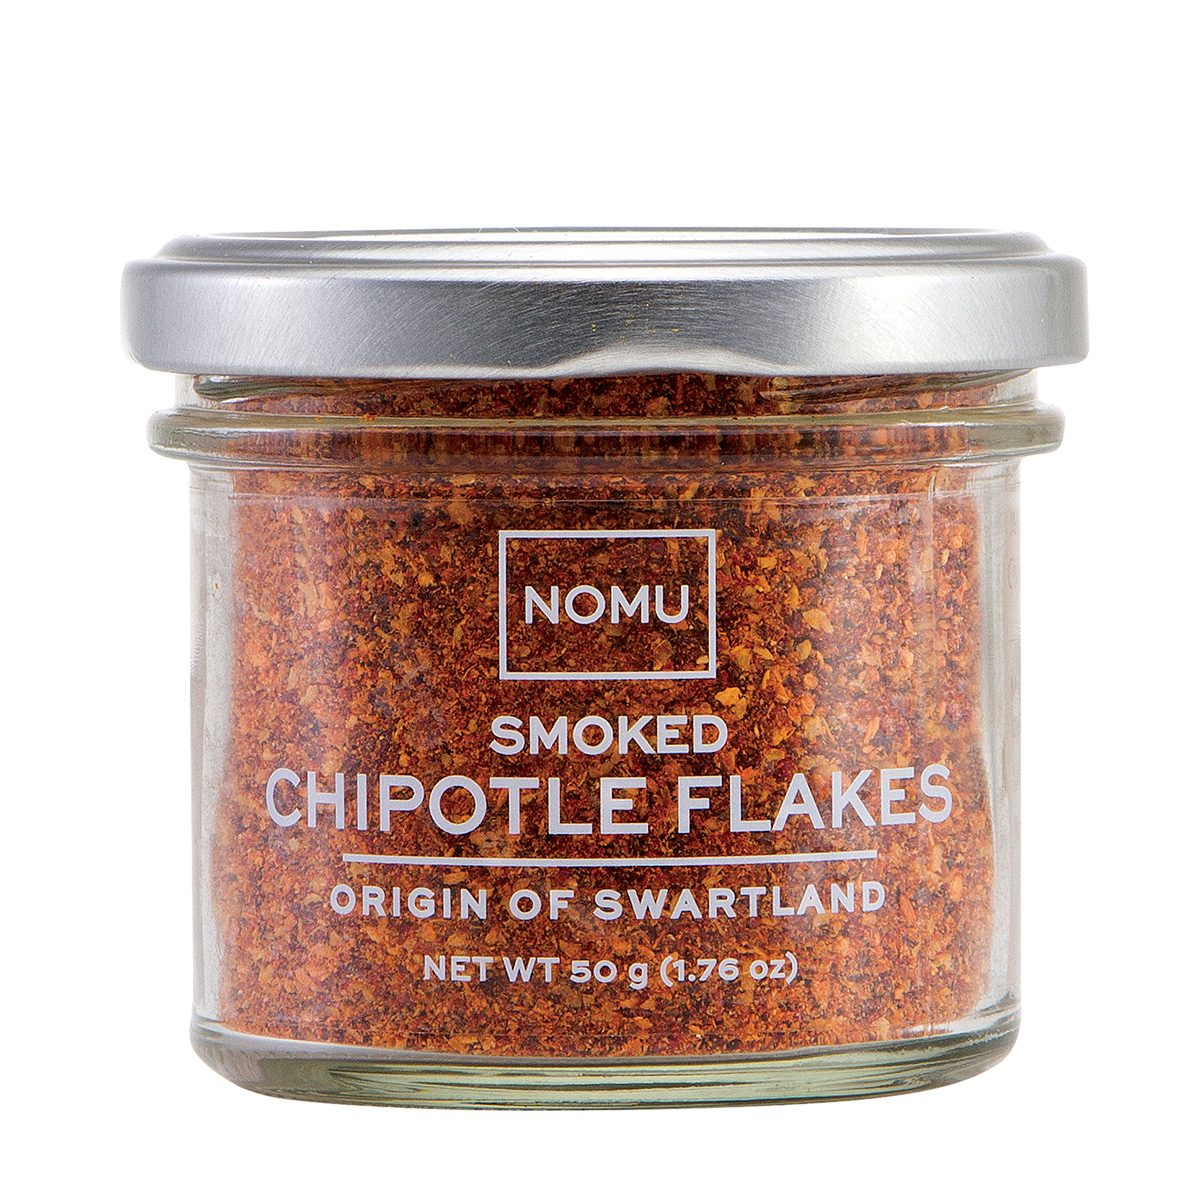 Smoked-Chipotle-Flakes1